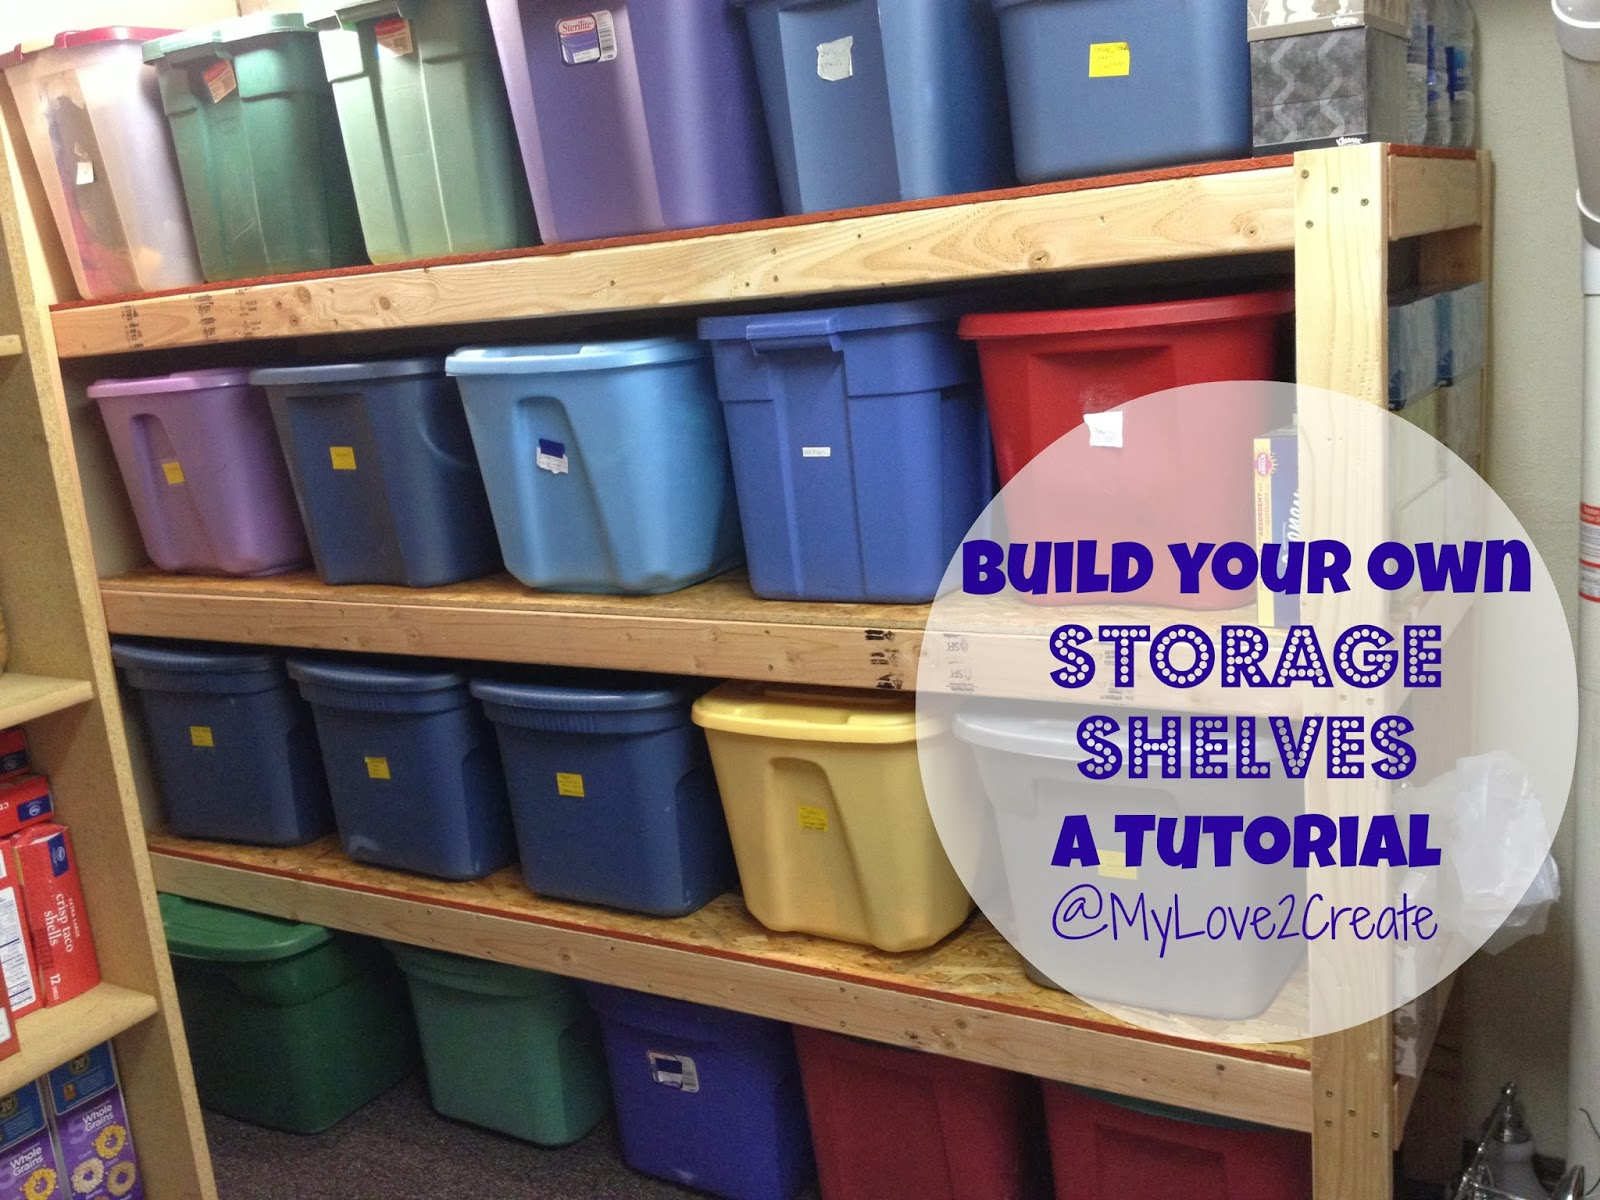 Storage Shelves A Tutorial My Love 2 Create